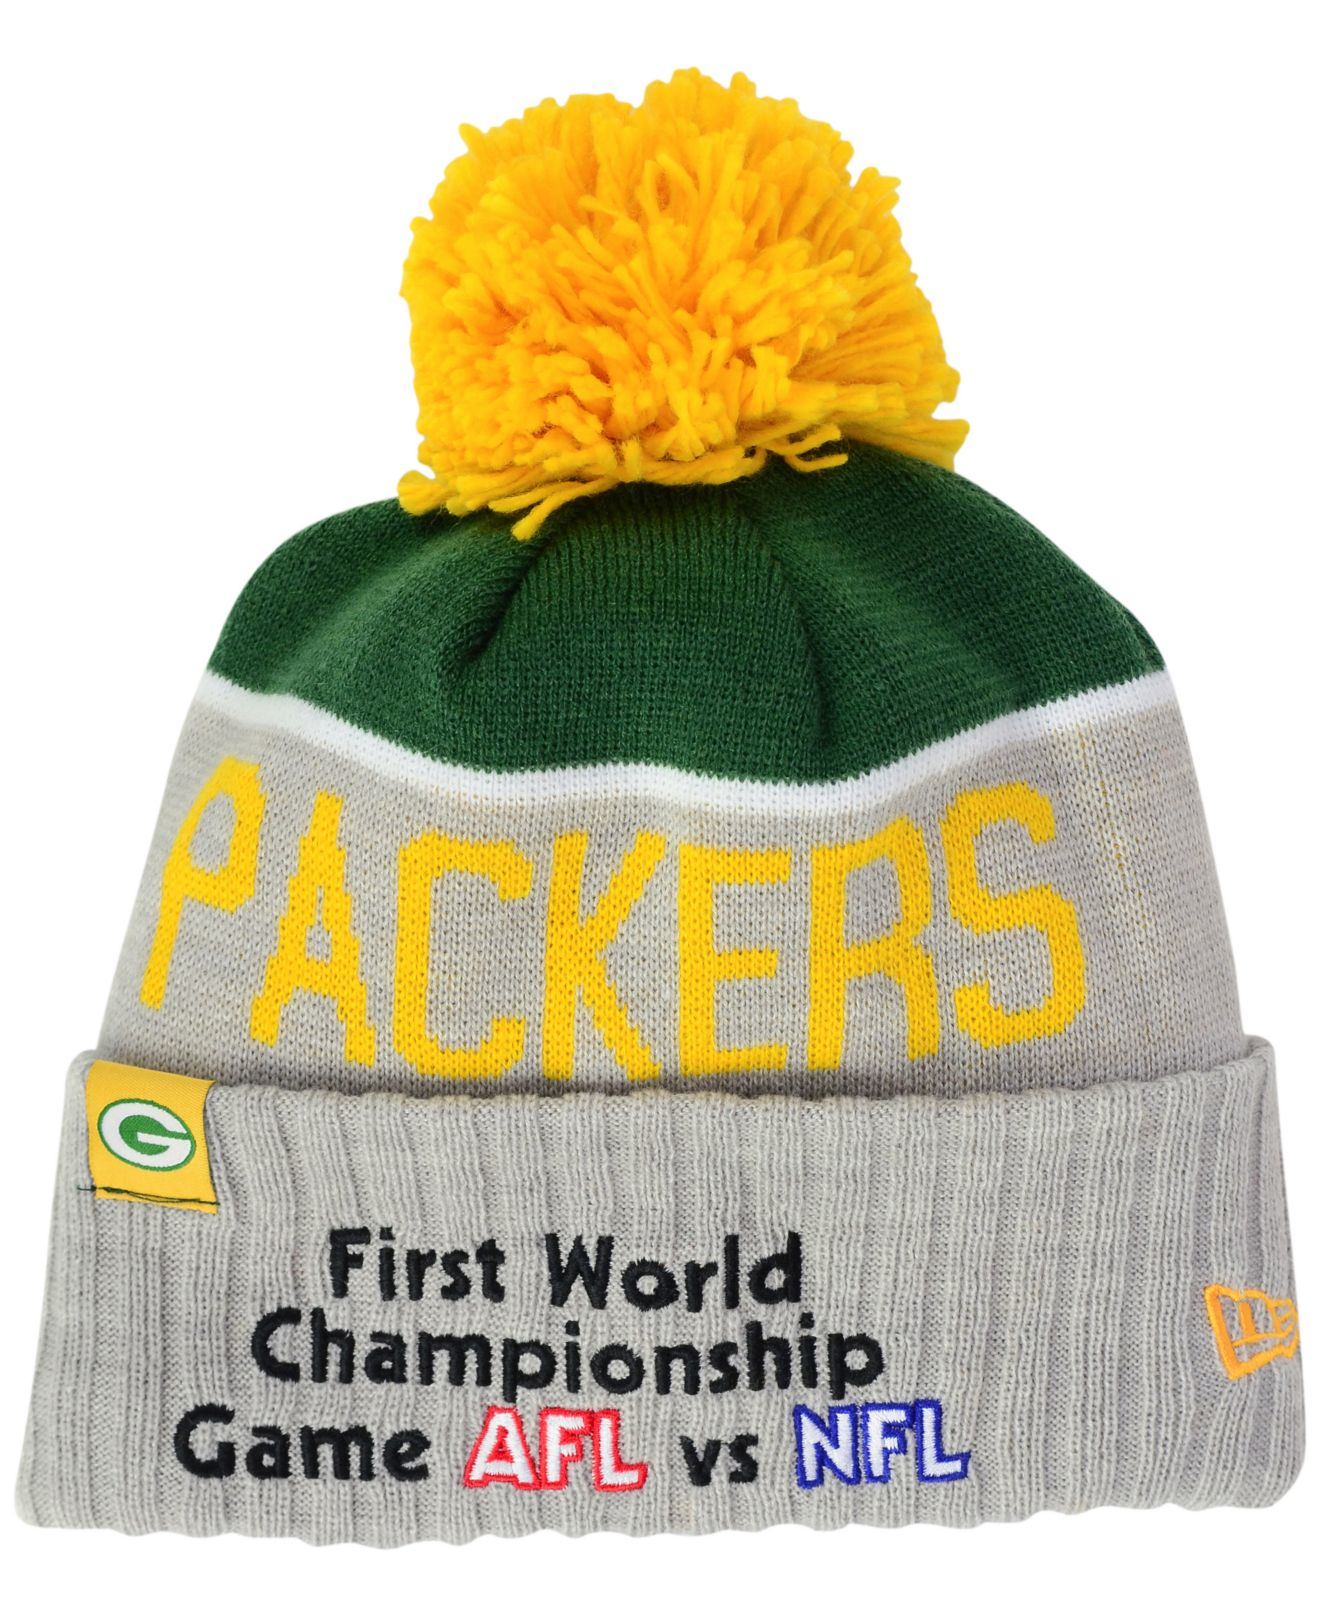 ... clearance lyst ktz green bay packers super bowl sport knit hat in gray  for men c981c fb6cca718